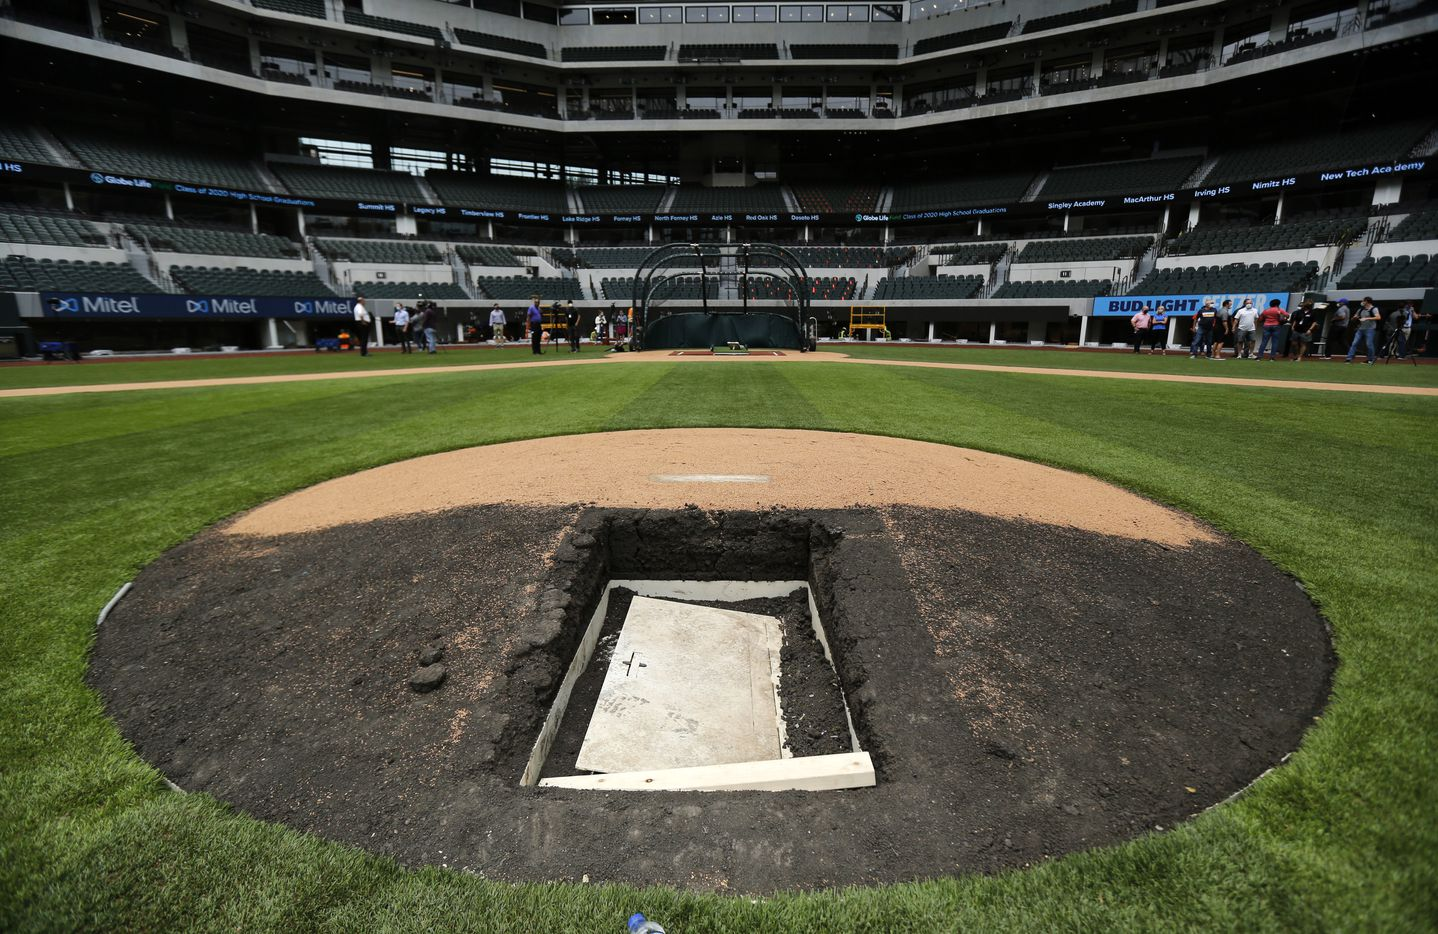 The Texas Rangers installed a retractable pitching mound at the new completed Globe Life Field in Arlington, Wednesday, May 20 2020. A door at the back of the mound leads to a 3-4 foot crawl space for the dirt hill to be lowered for non-baseball events. (Tom Fox/The Dallas Morning News)